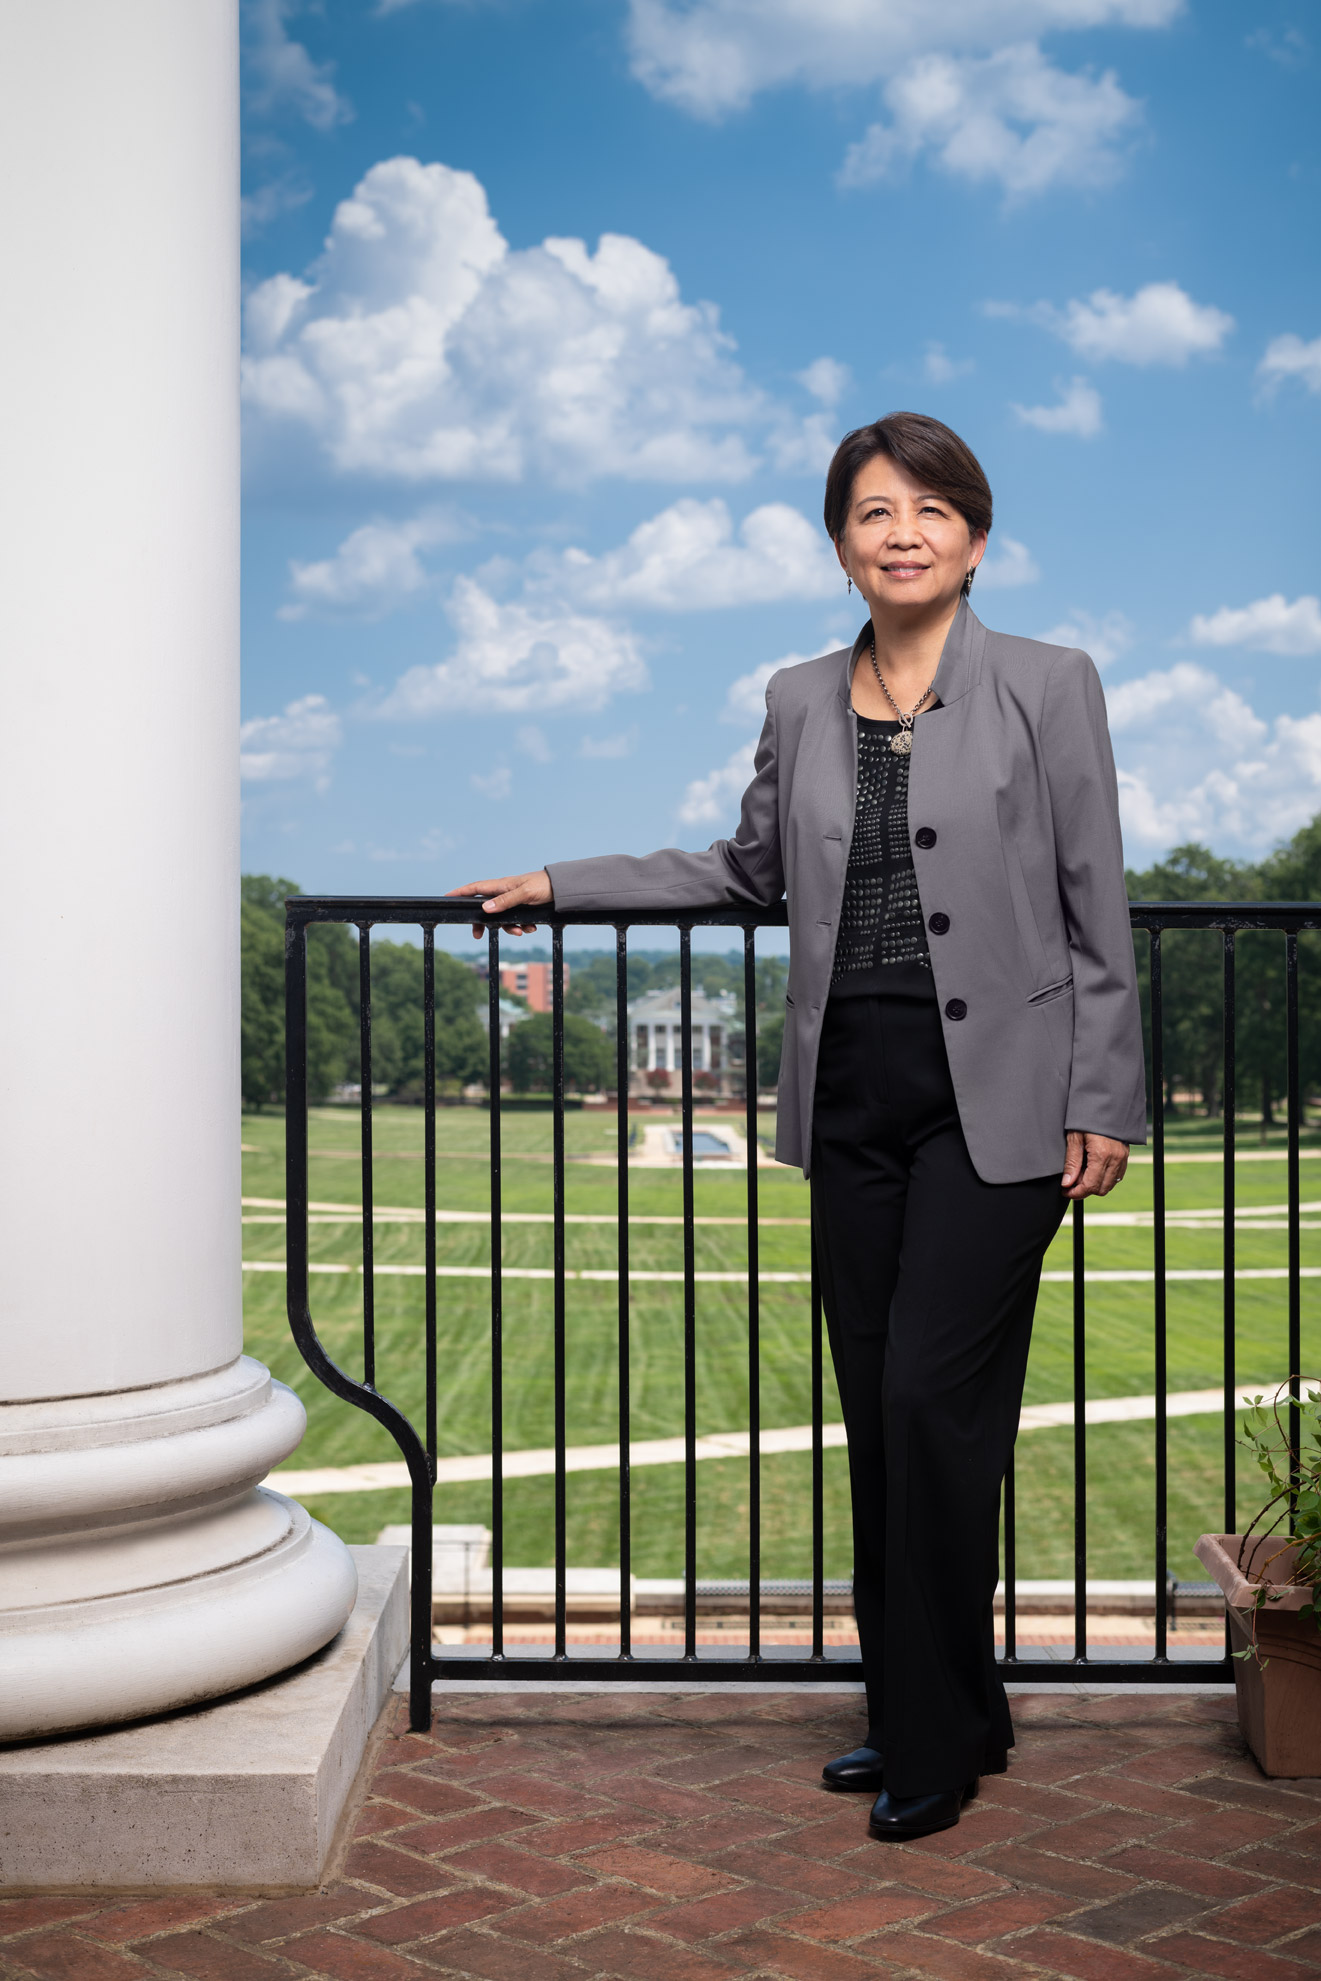 University of Maryland Libraries Dean Adriene Lim stands with the campus behind her